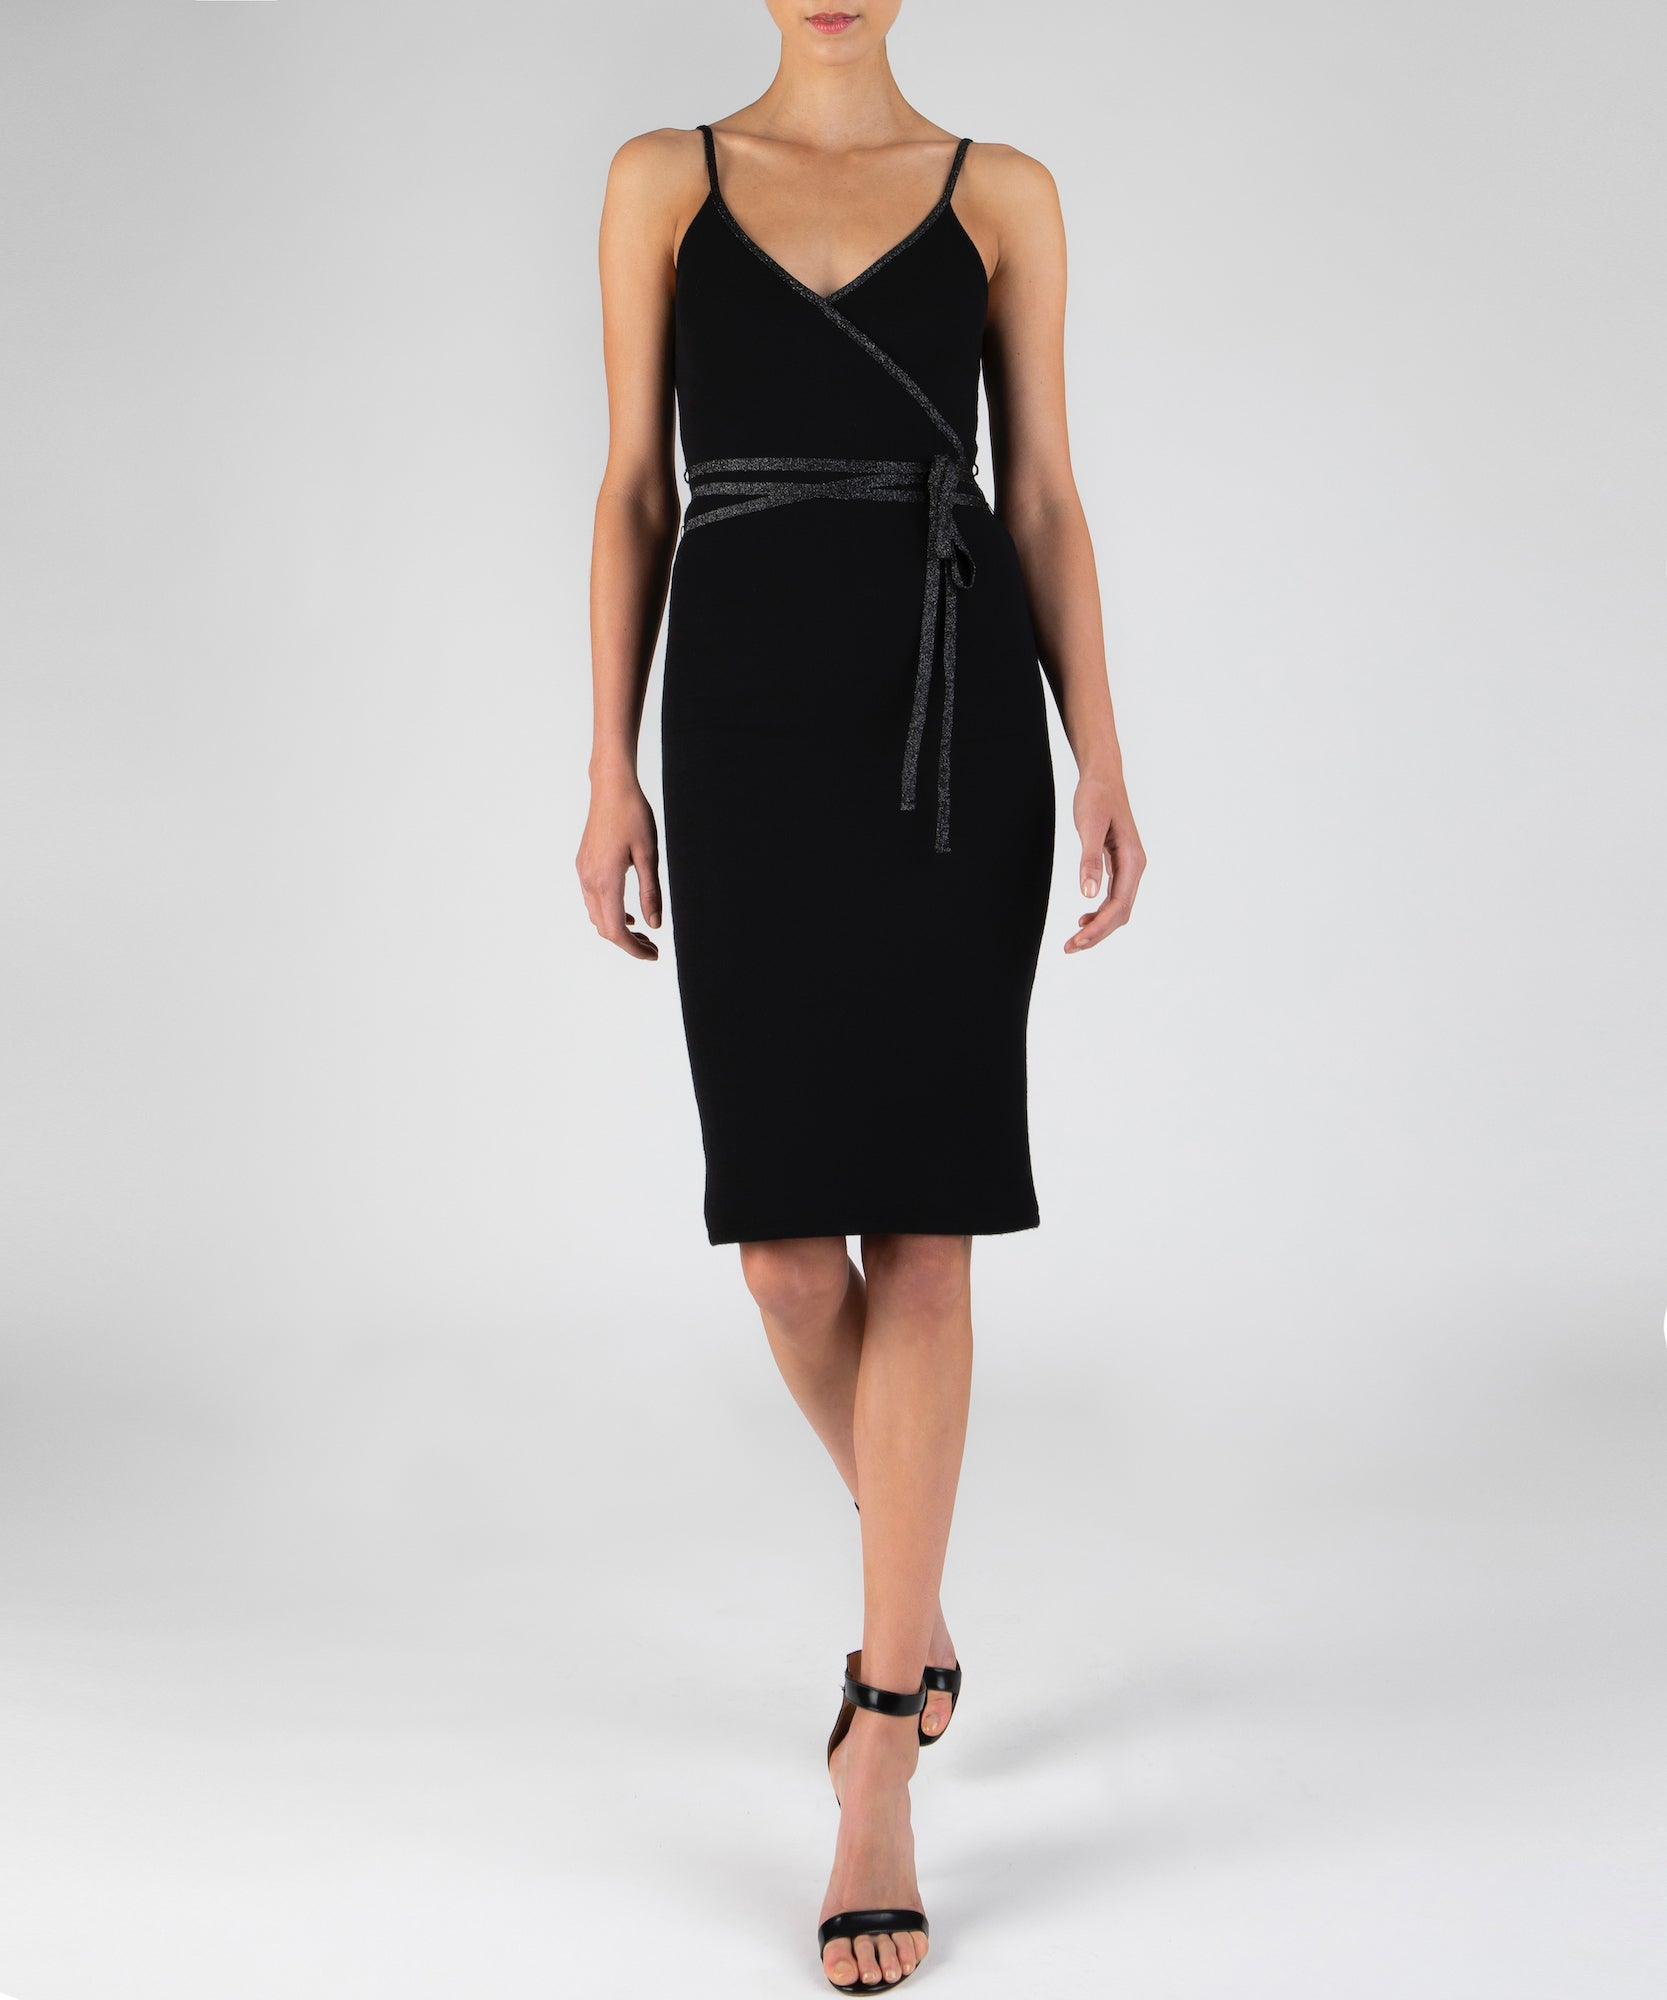 Black Modal Rib Wrap Dress - Women's Dress by ATM Anthony Thomas Melillo